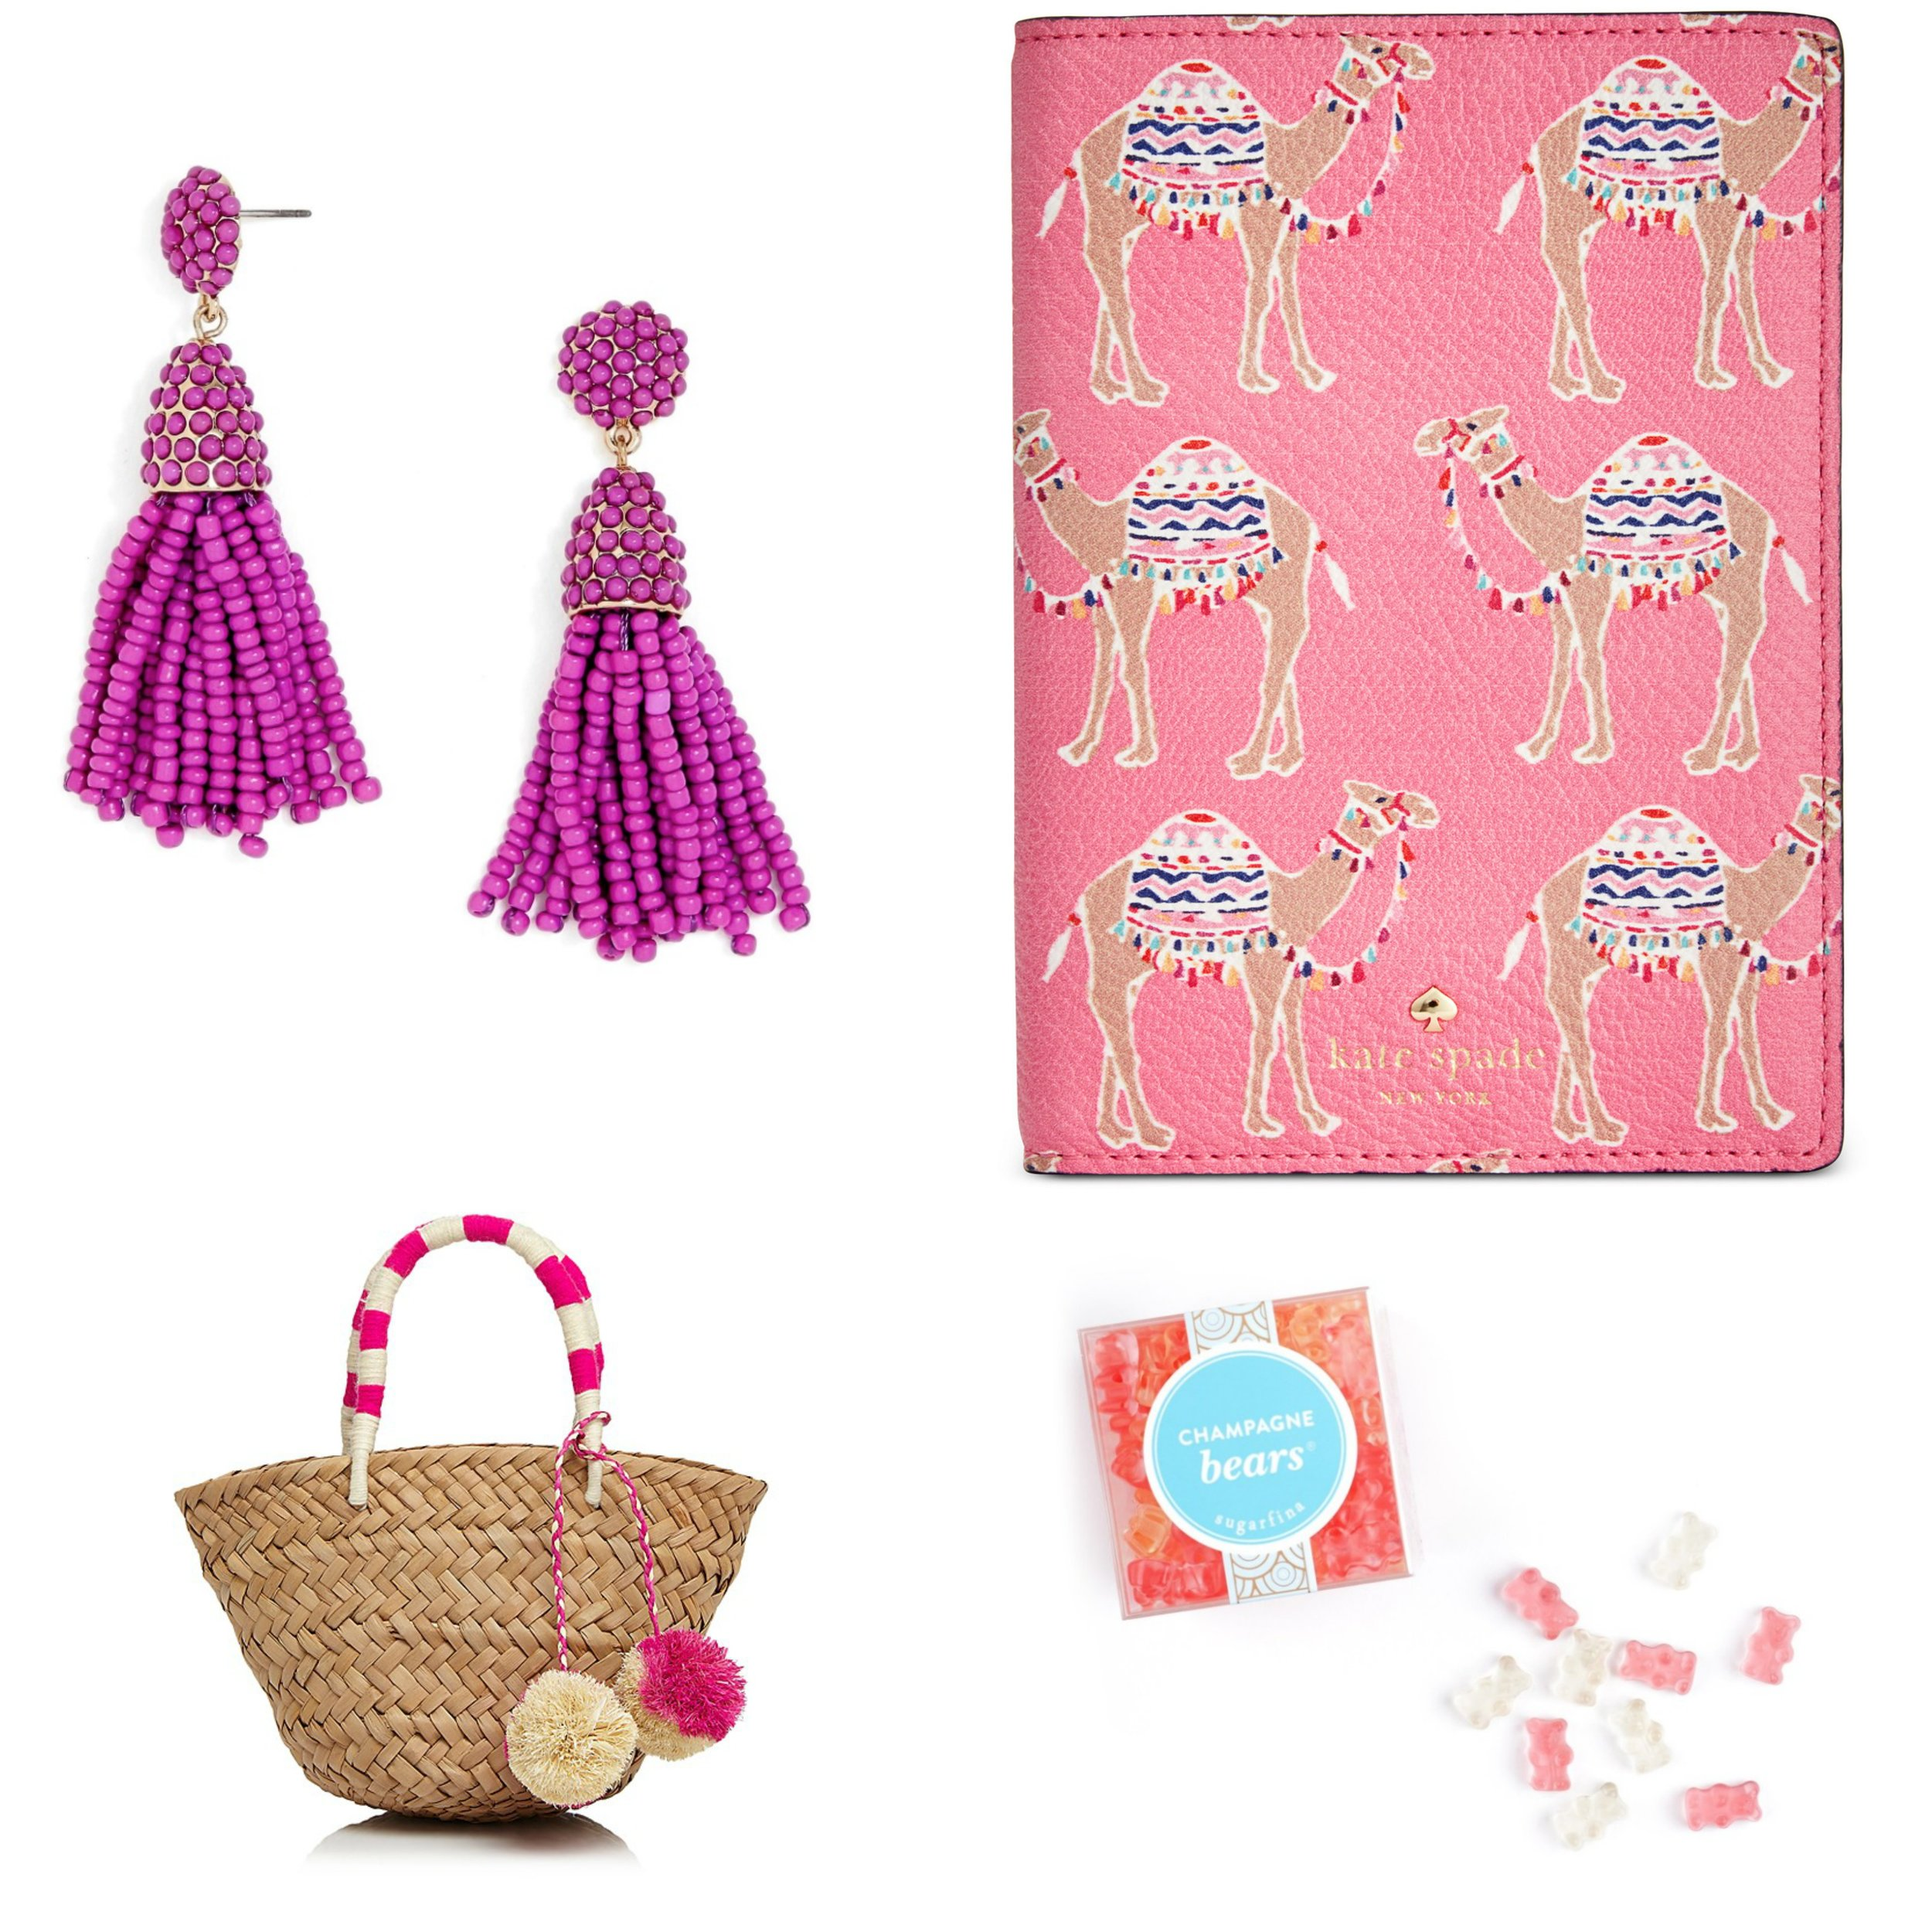 Mother's Day gift ideas on Belle Meets World blog